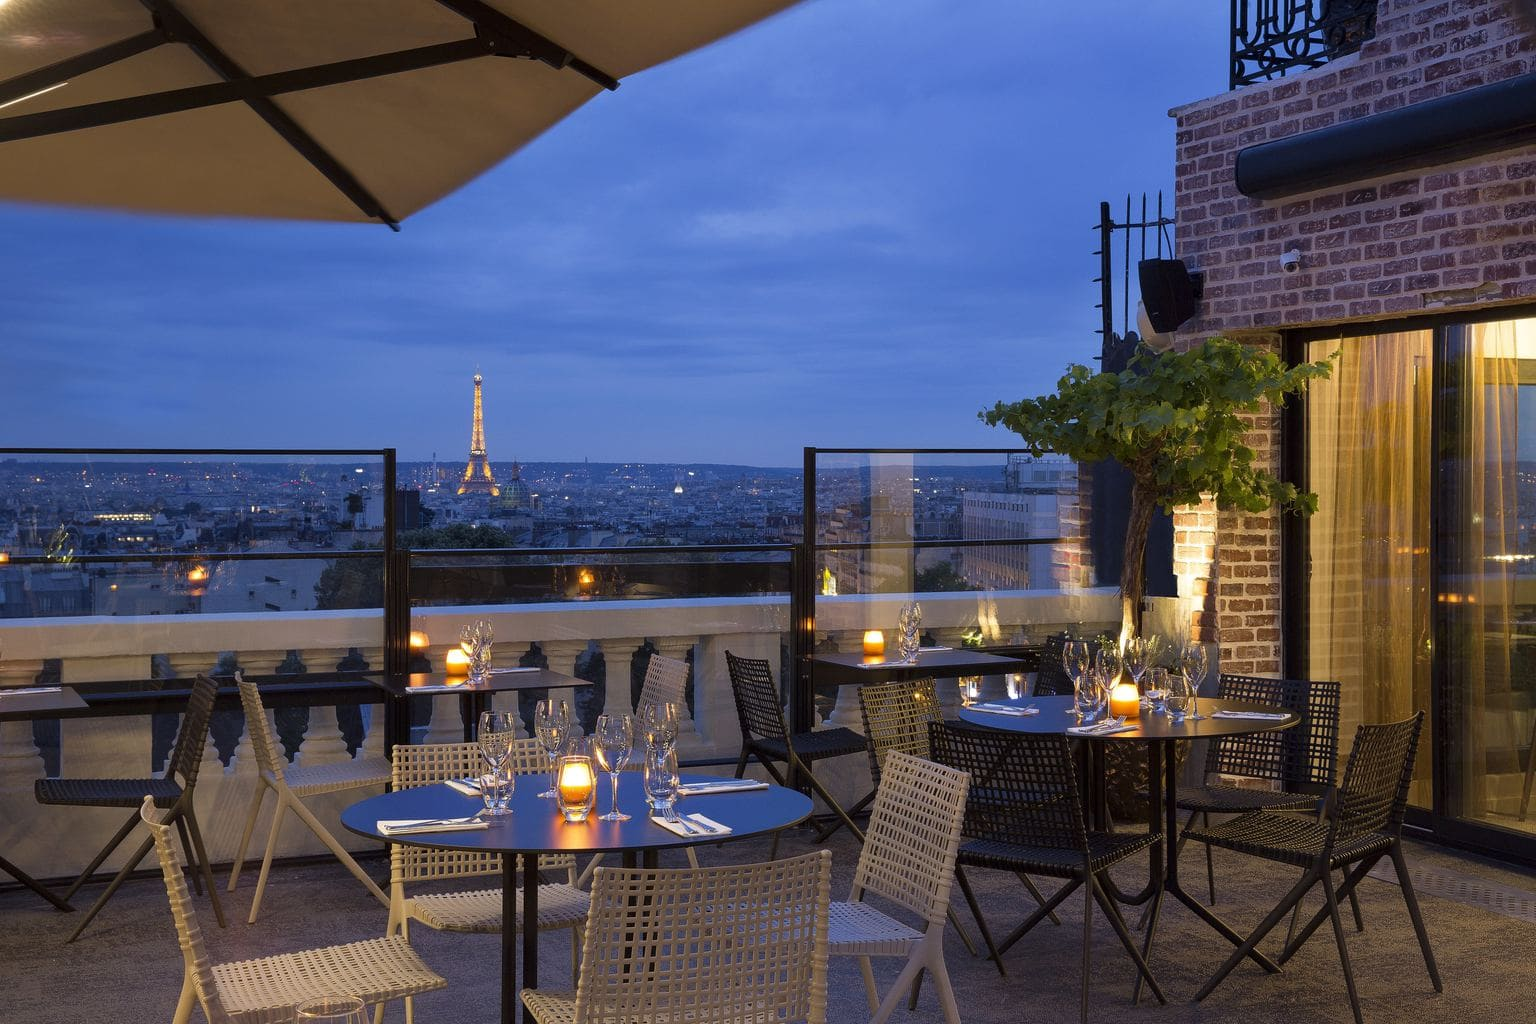 Toit Terrasse Hotel Raphael 5 Rooftop Bars In Paris With The Ultimate Best Views Of The City